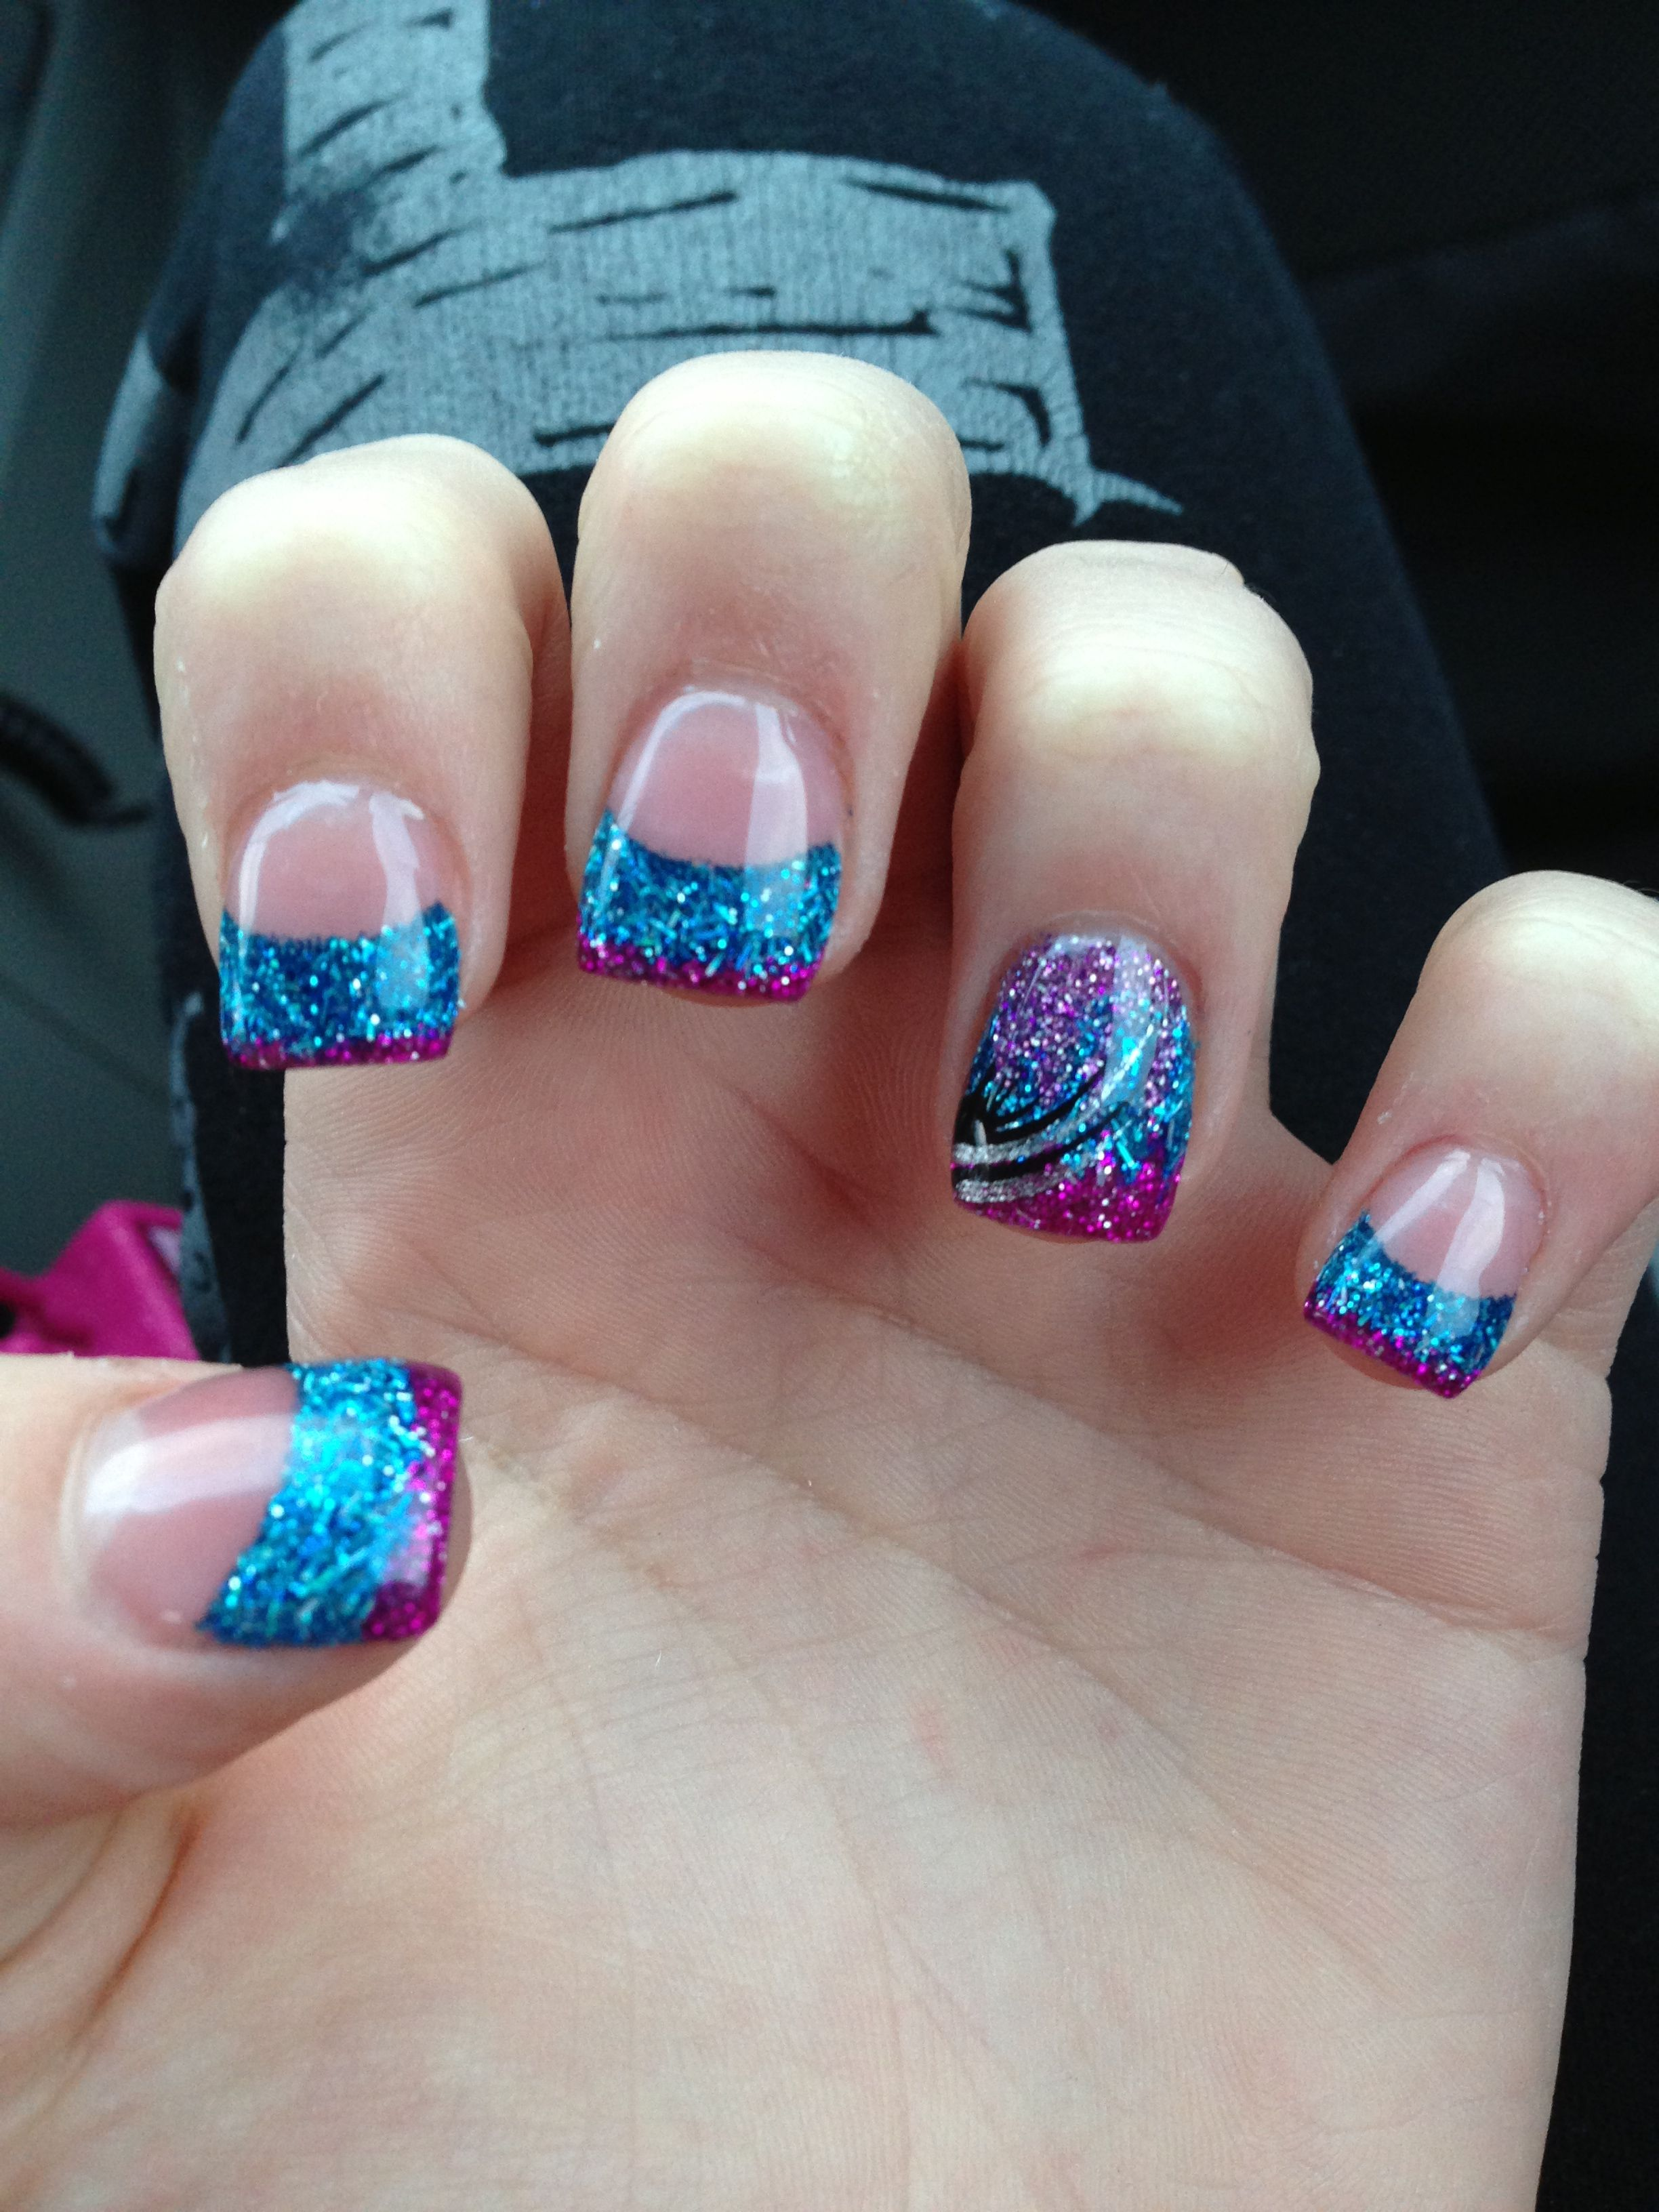 My new Gel nails | Art (eye & nail) | Pinterest | Nail nail, Makeup ...